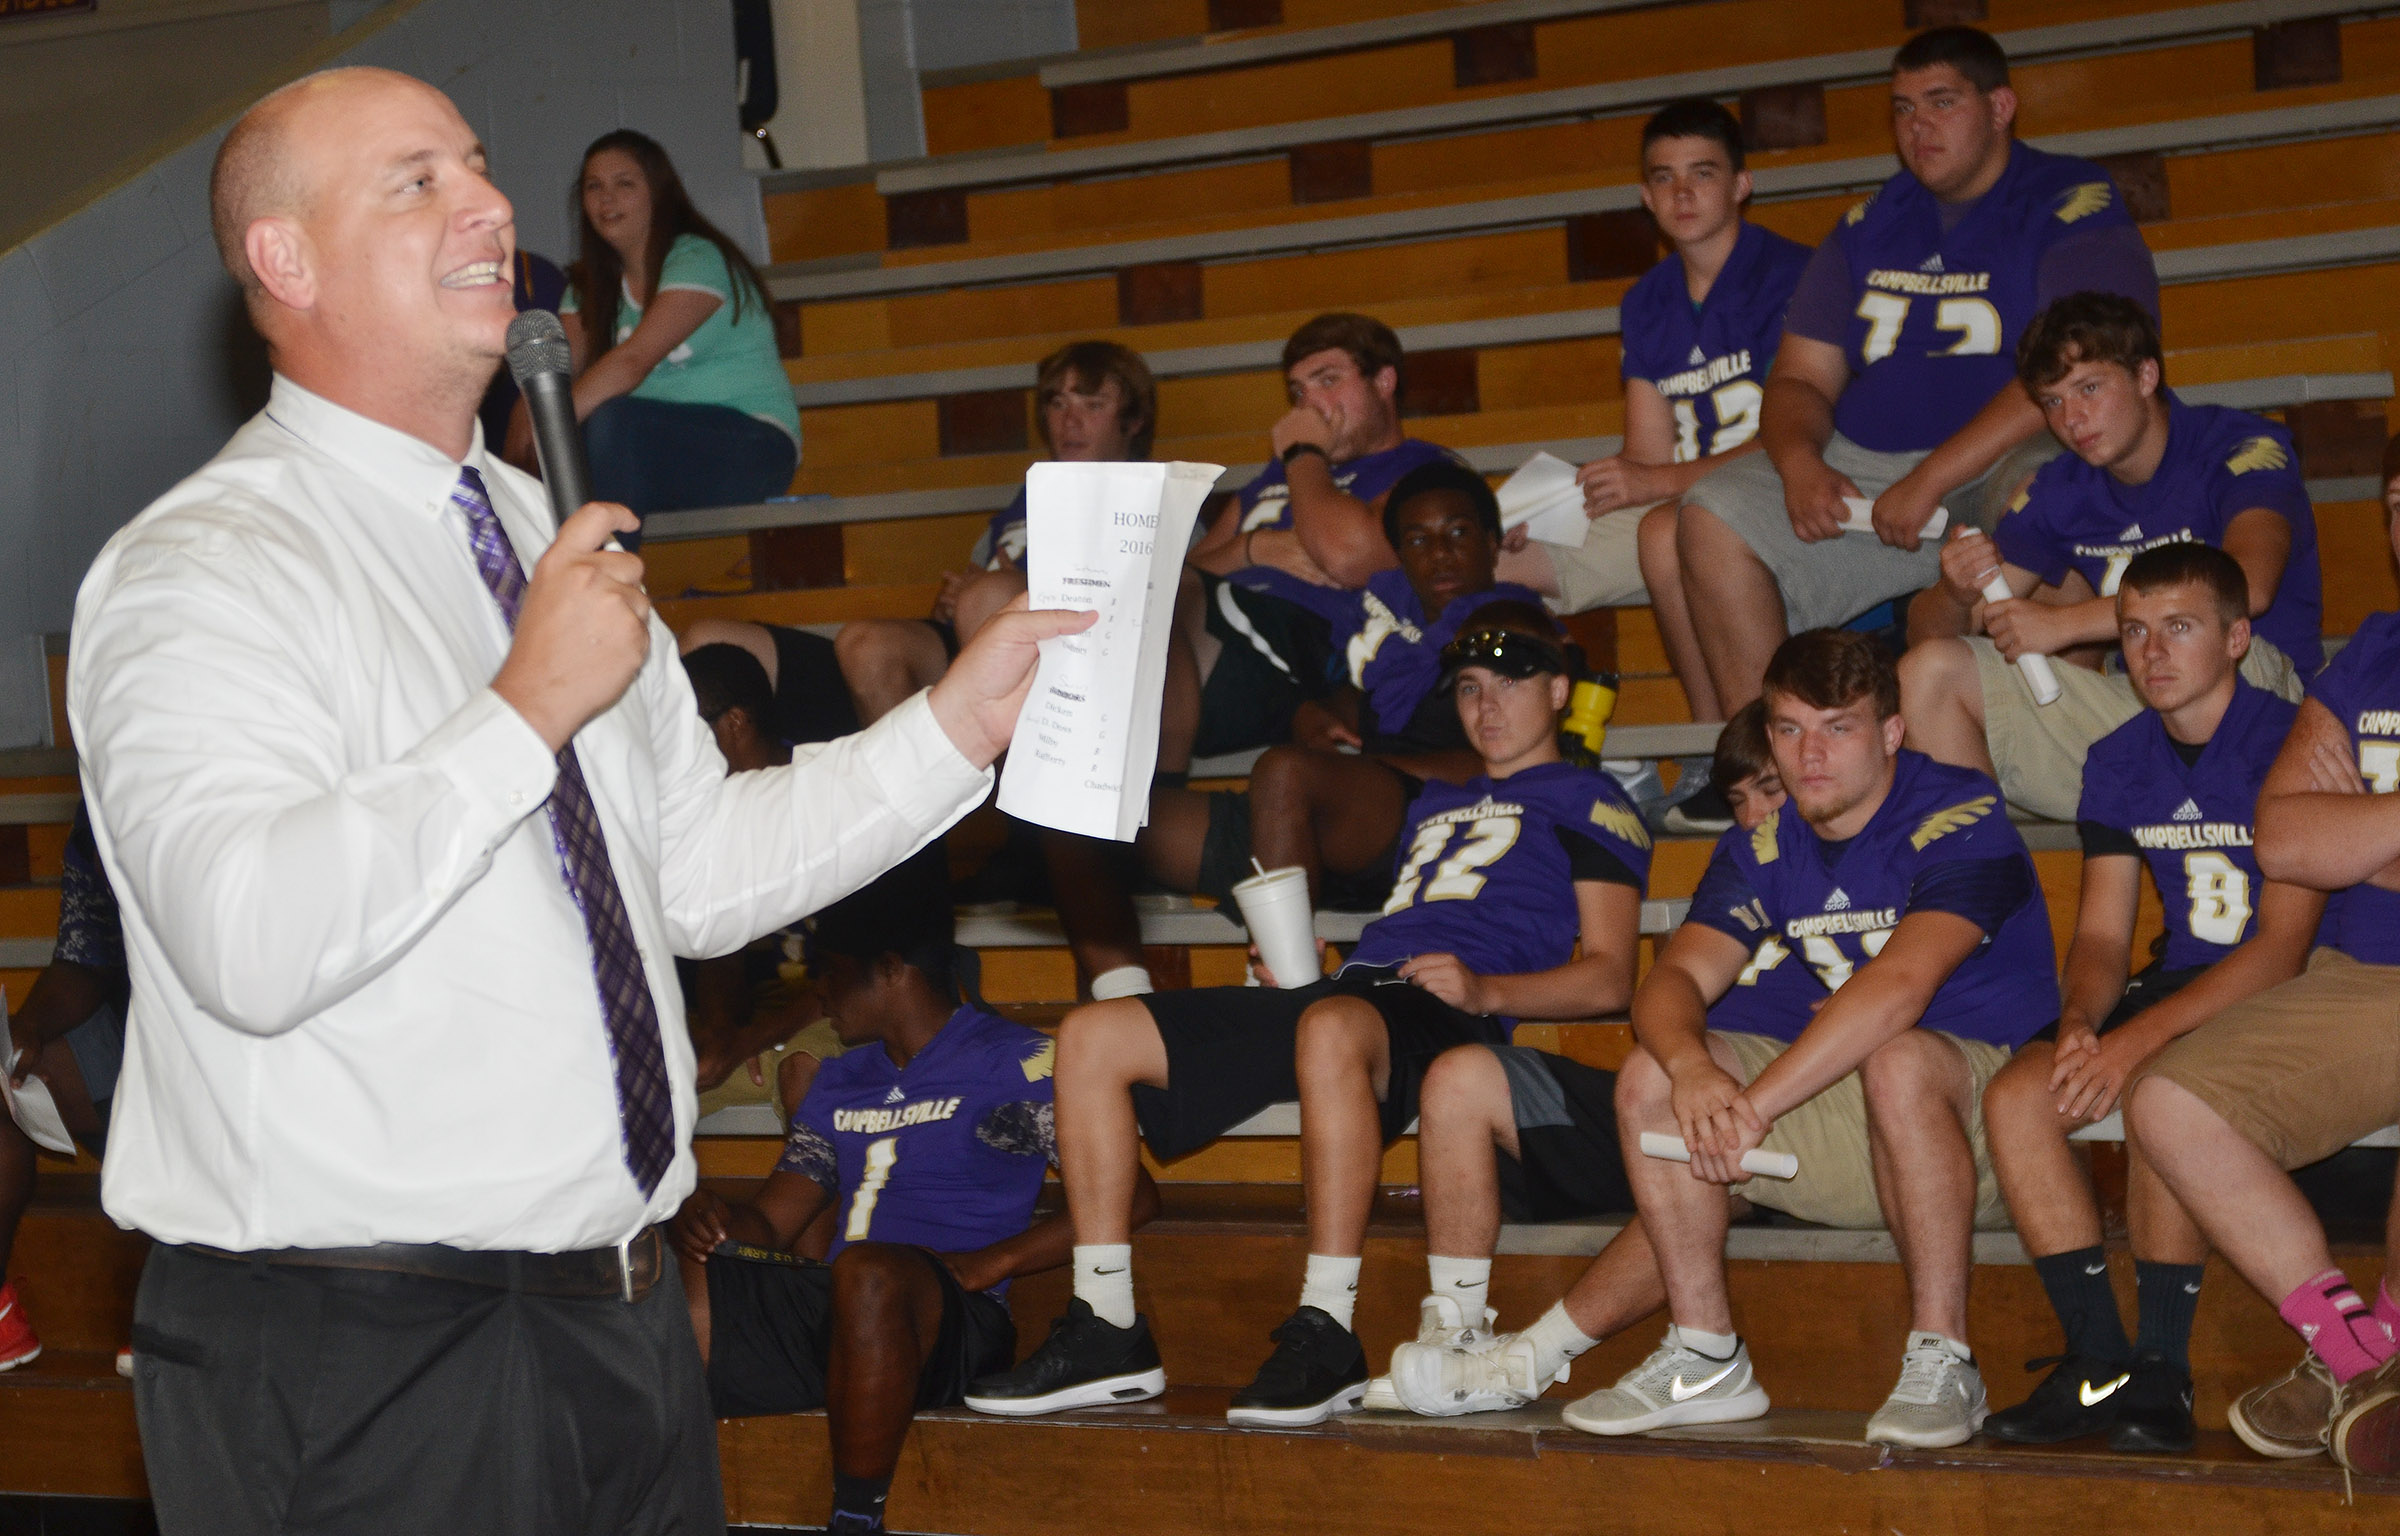 CHS Principal David Petett talks with CHS upperclassmen about the new school year.